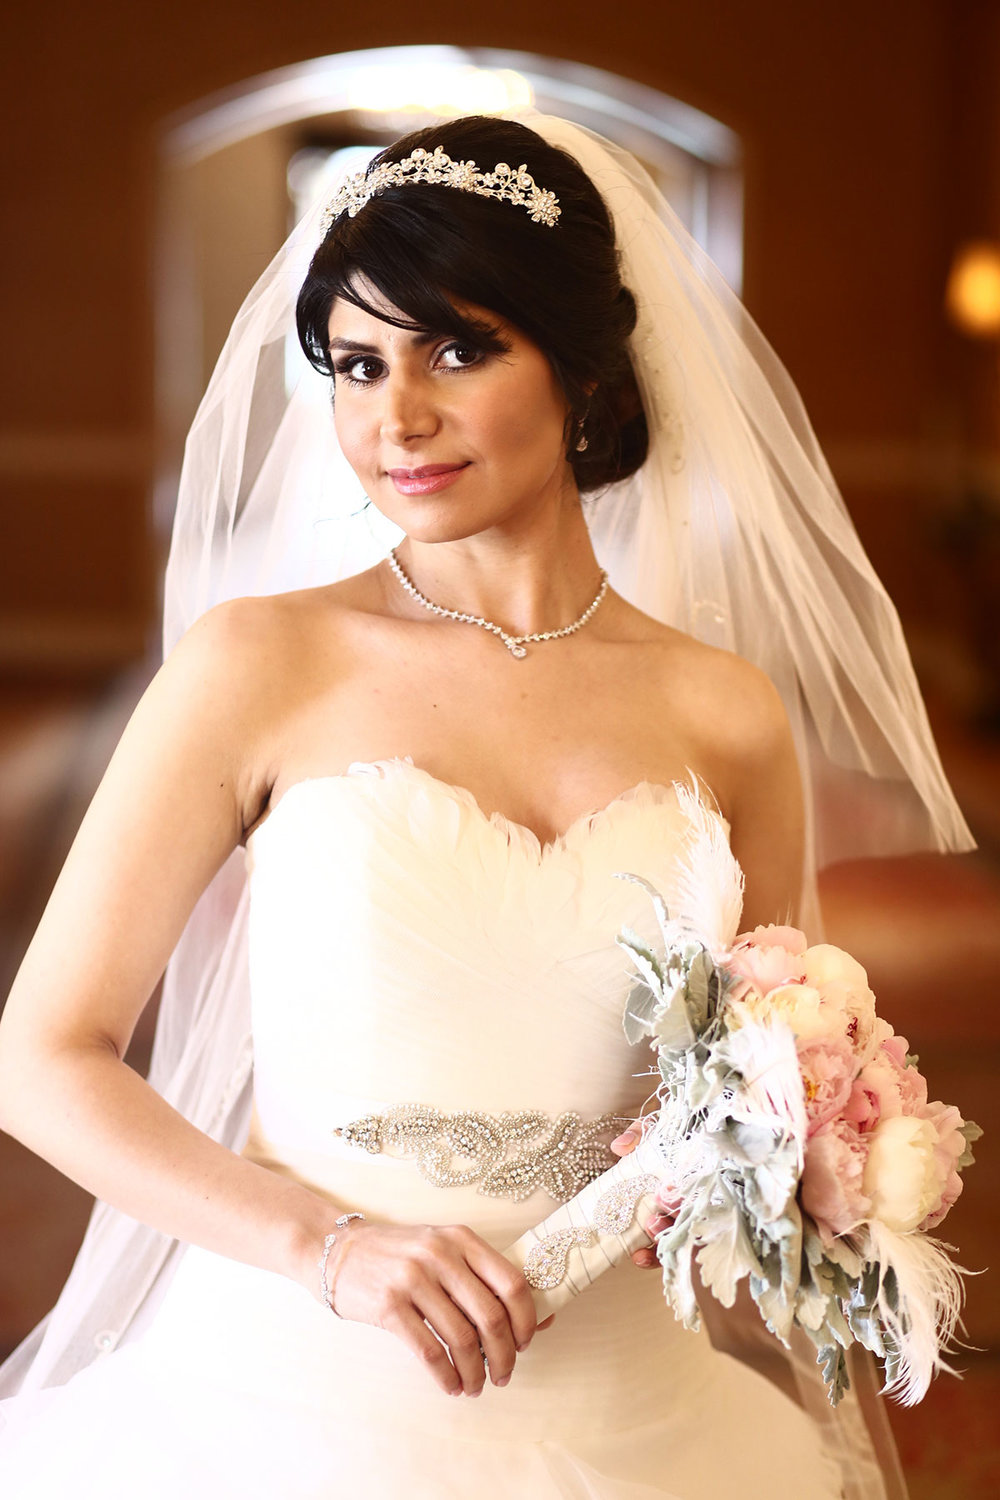 Wedding_Chicago_Iman_Sharareh_005.jpg